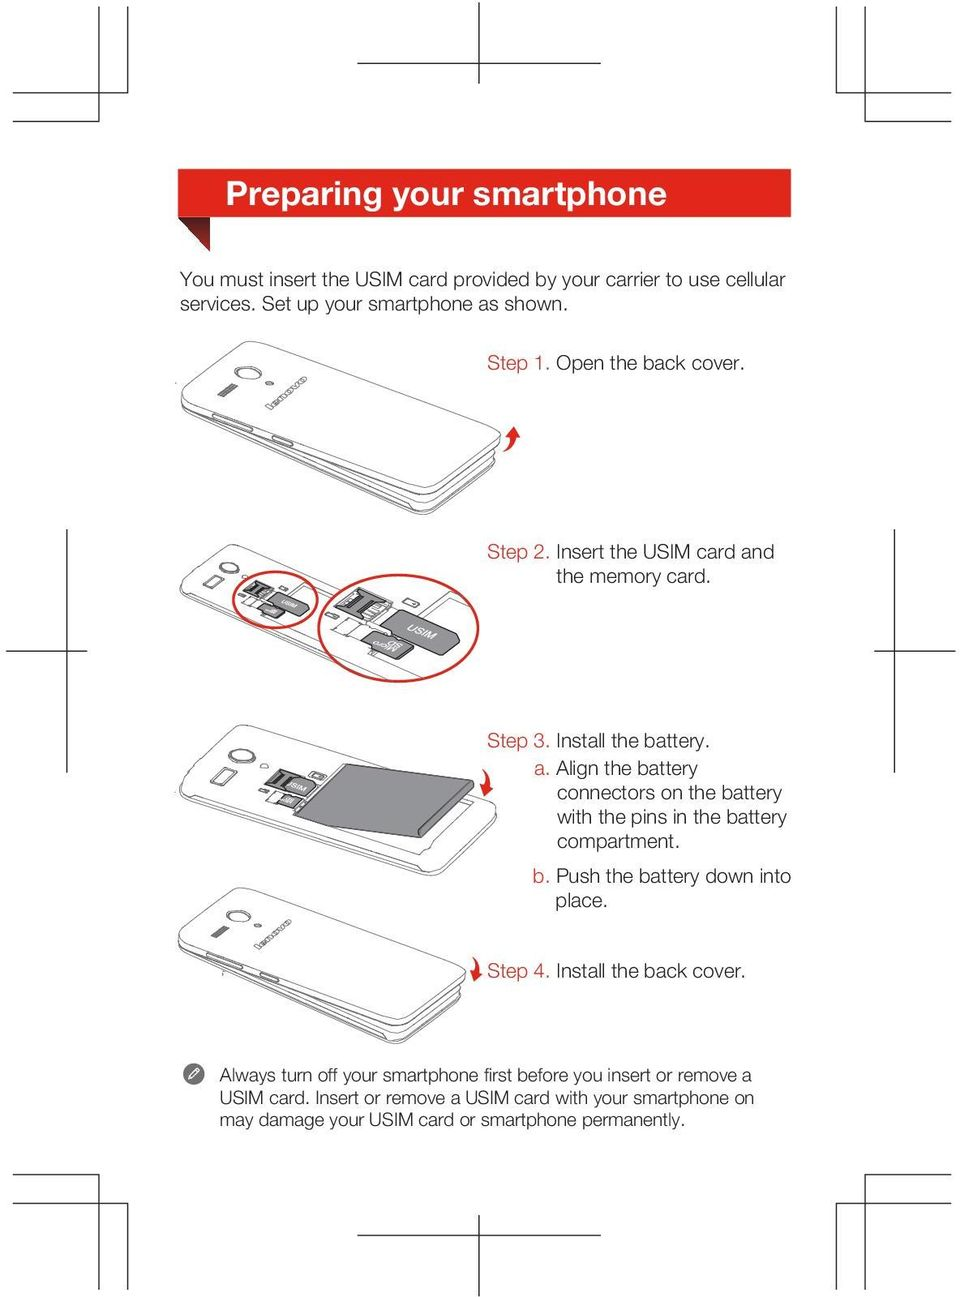 b. Push the battery down into place. Step 4. Install the back cover. Always turn off your smartphone first before you insert or remove a USIM card.